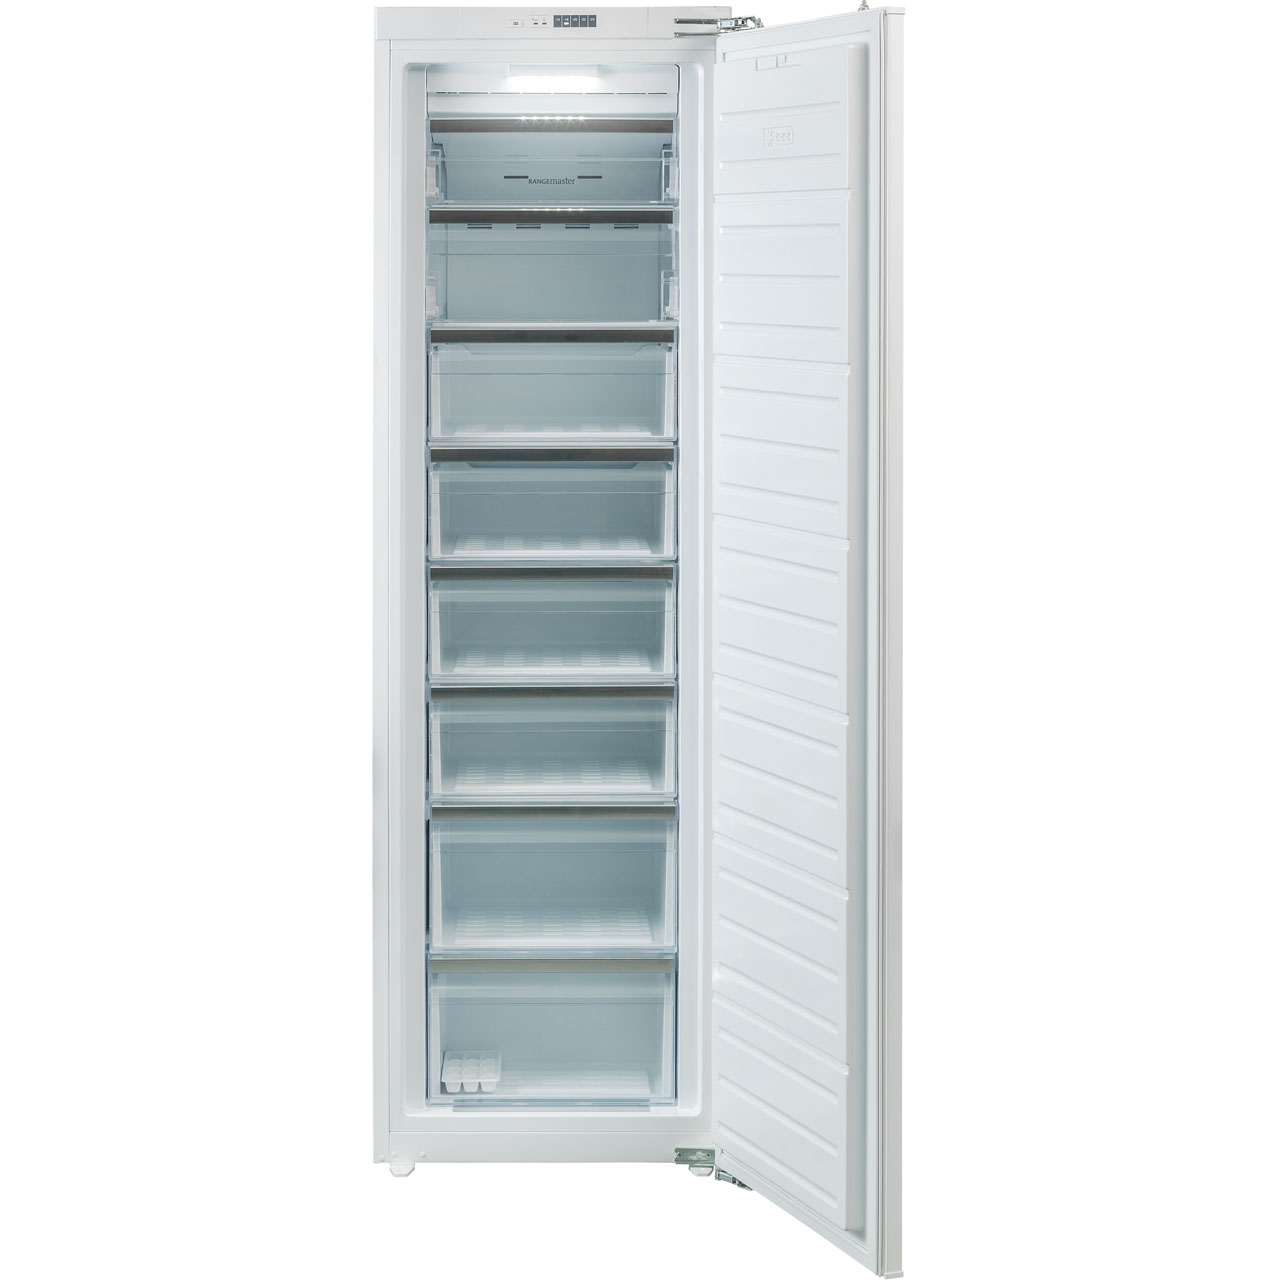 Rangemaster RTFZ18/INT Integrated Frost Free Upright Freezer review